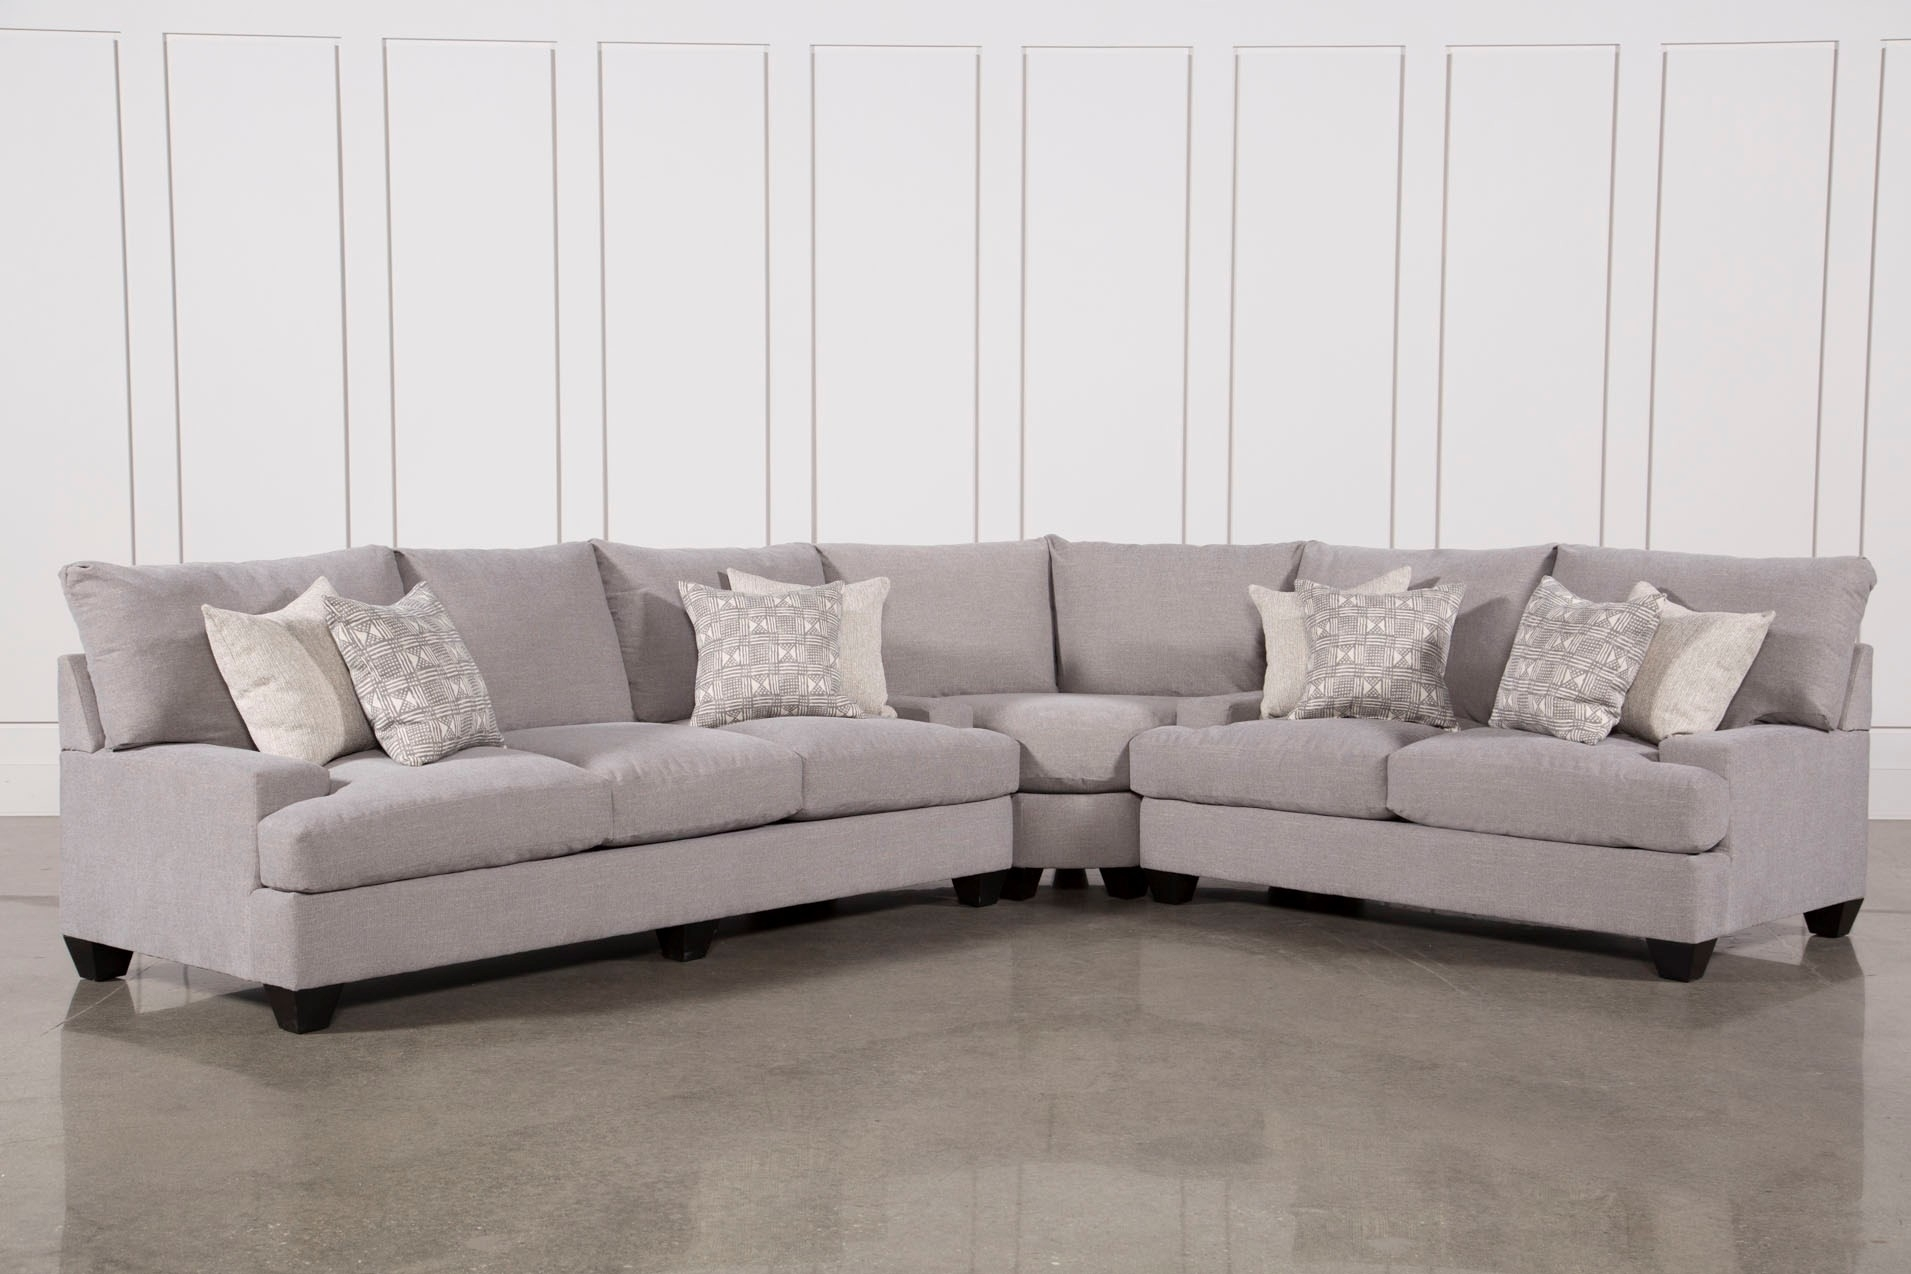 Living Spaces Sectional Aurora 2 Piece 90315 0 Jpg W 1911 H 1288 In Aurora 2 Piece Sectionals (View 10 of 25)